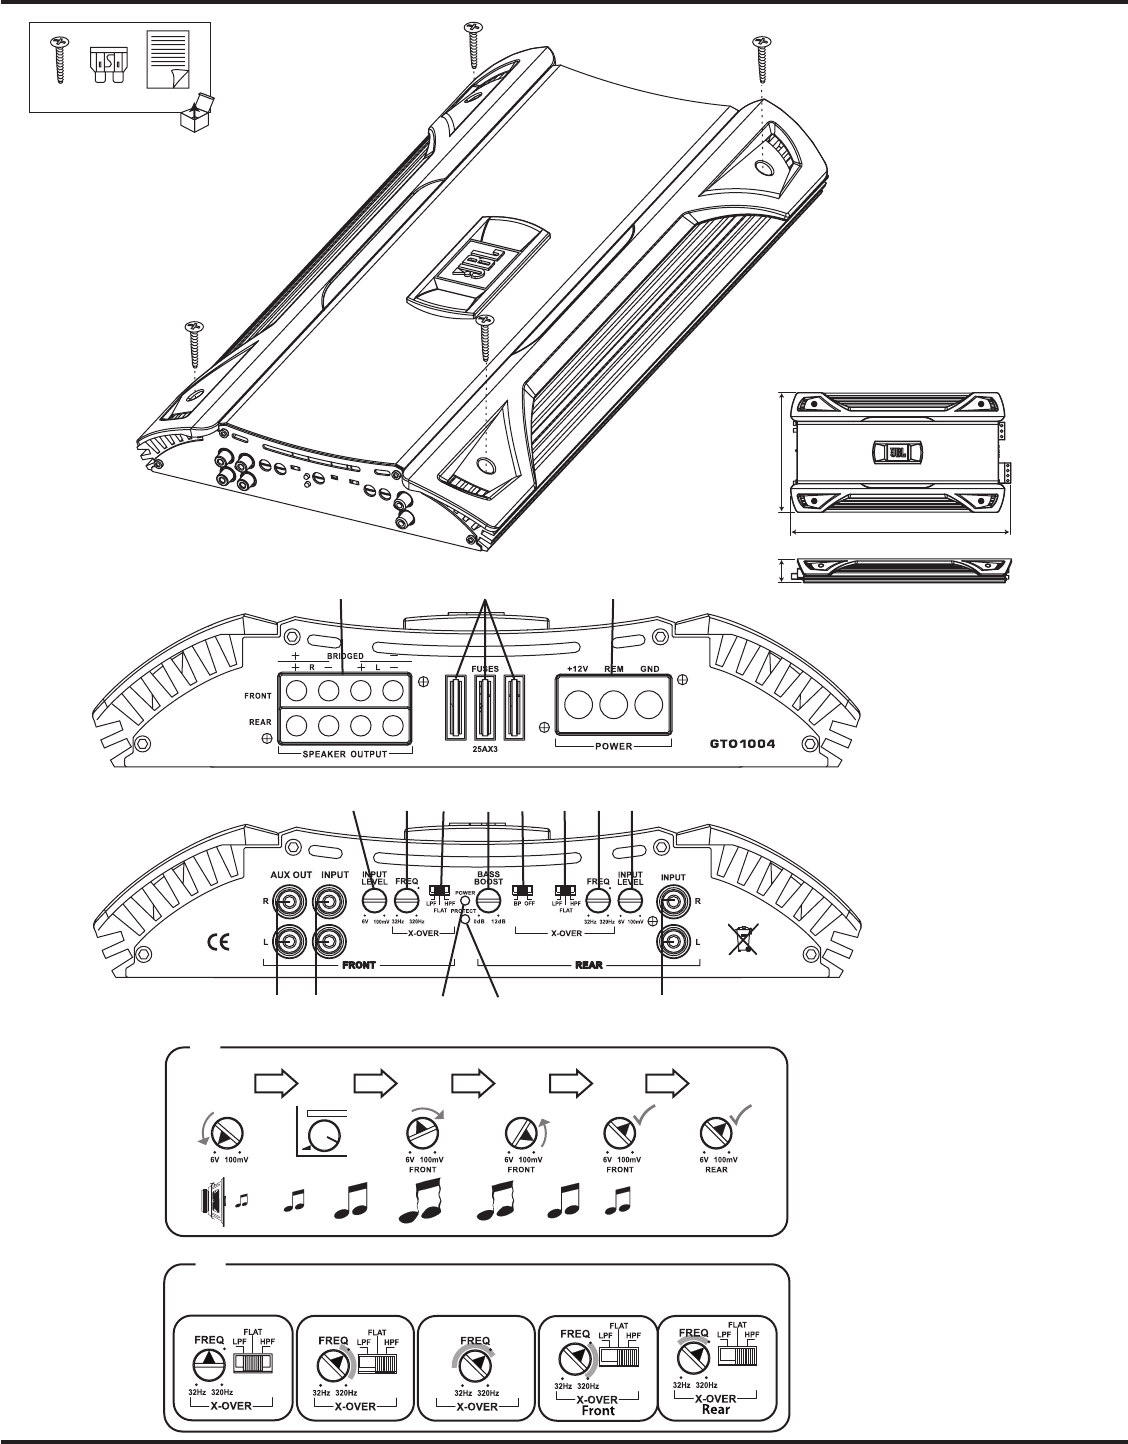 User manual JBL GTO1004 (4 pages)